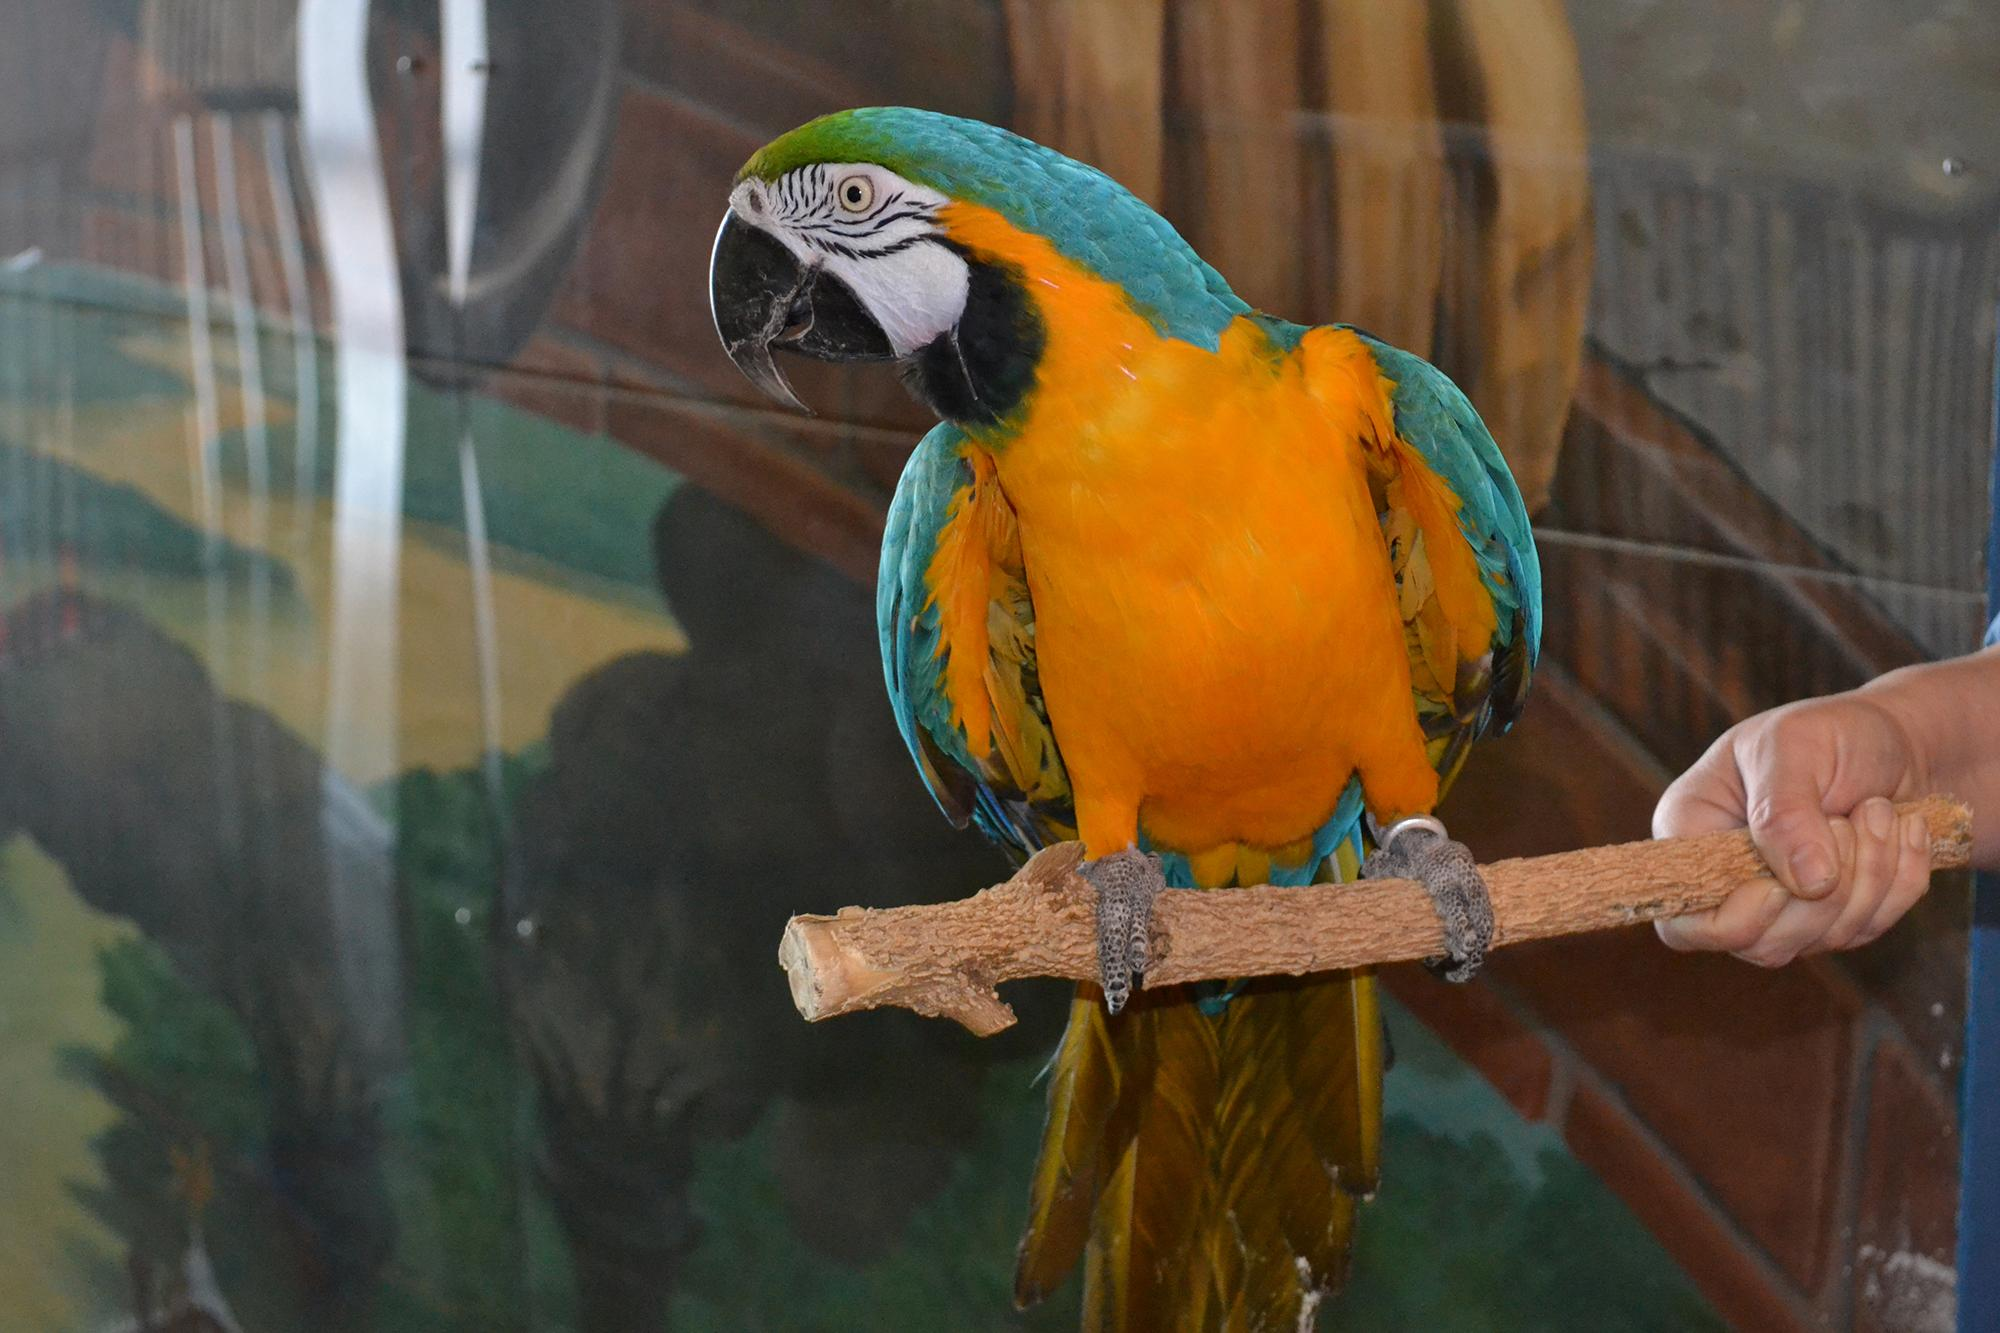 Missy, a 26-year-old blue and gold macaw at the Peggy Notebaert Nature Museum.